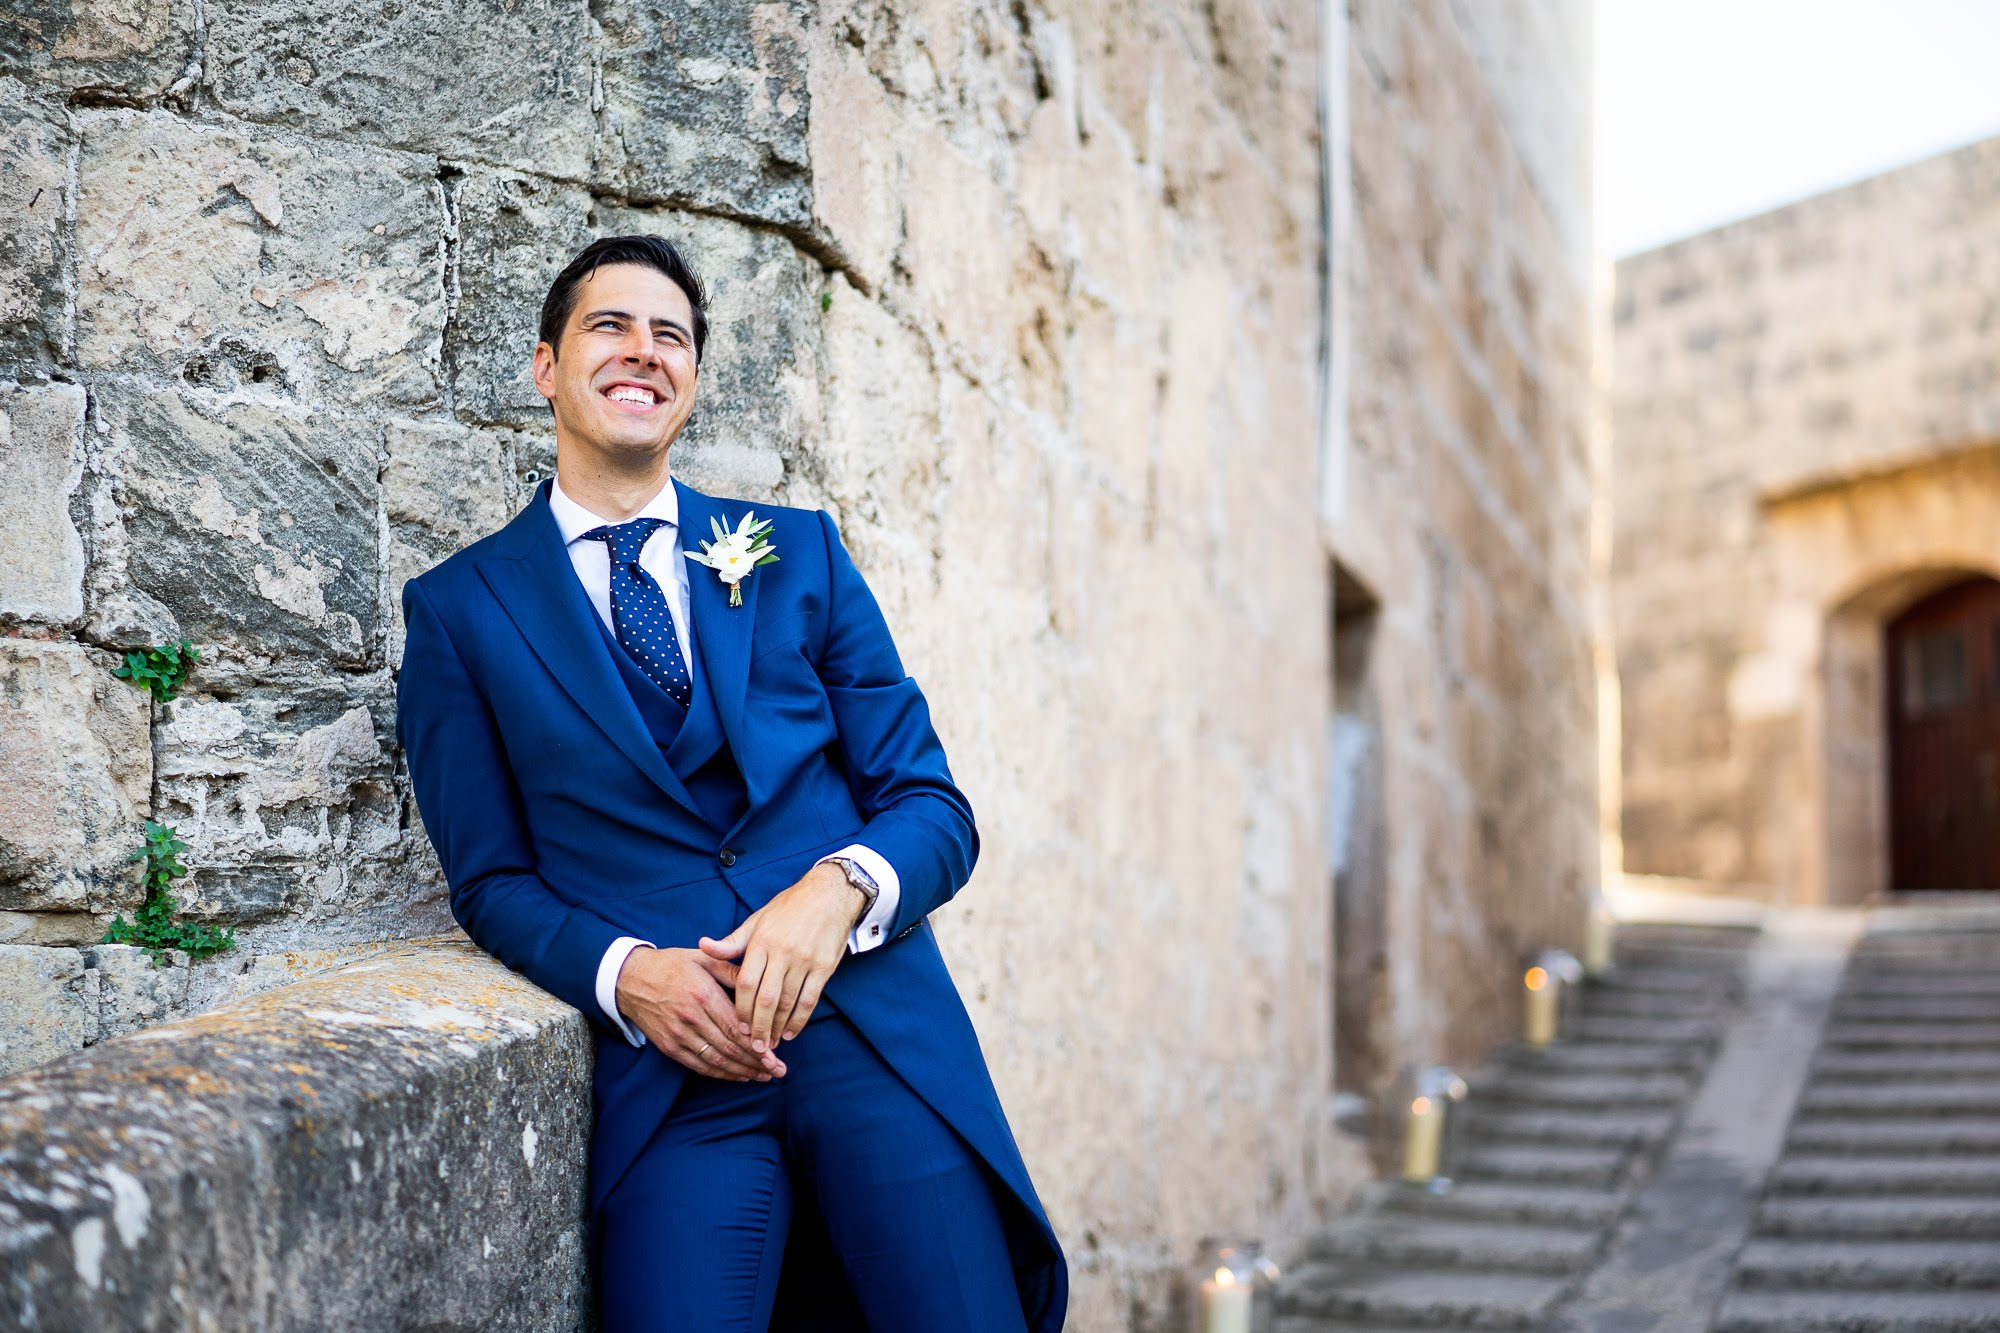 El traje de novio – Cómo elegir el mejor traje para la boda / The groom suit – How to choose the best suit for the wedding